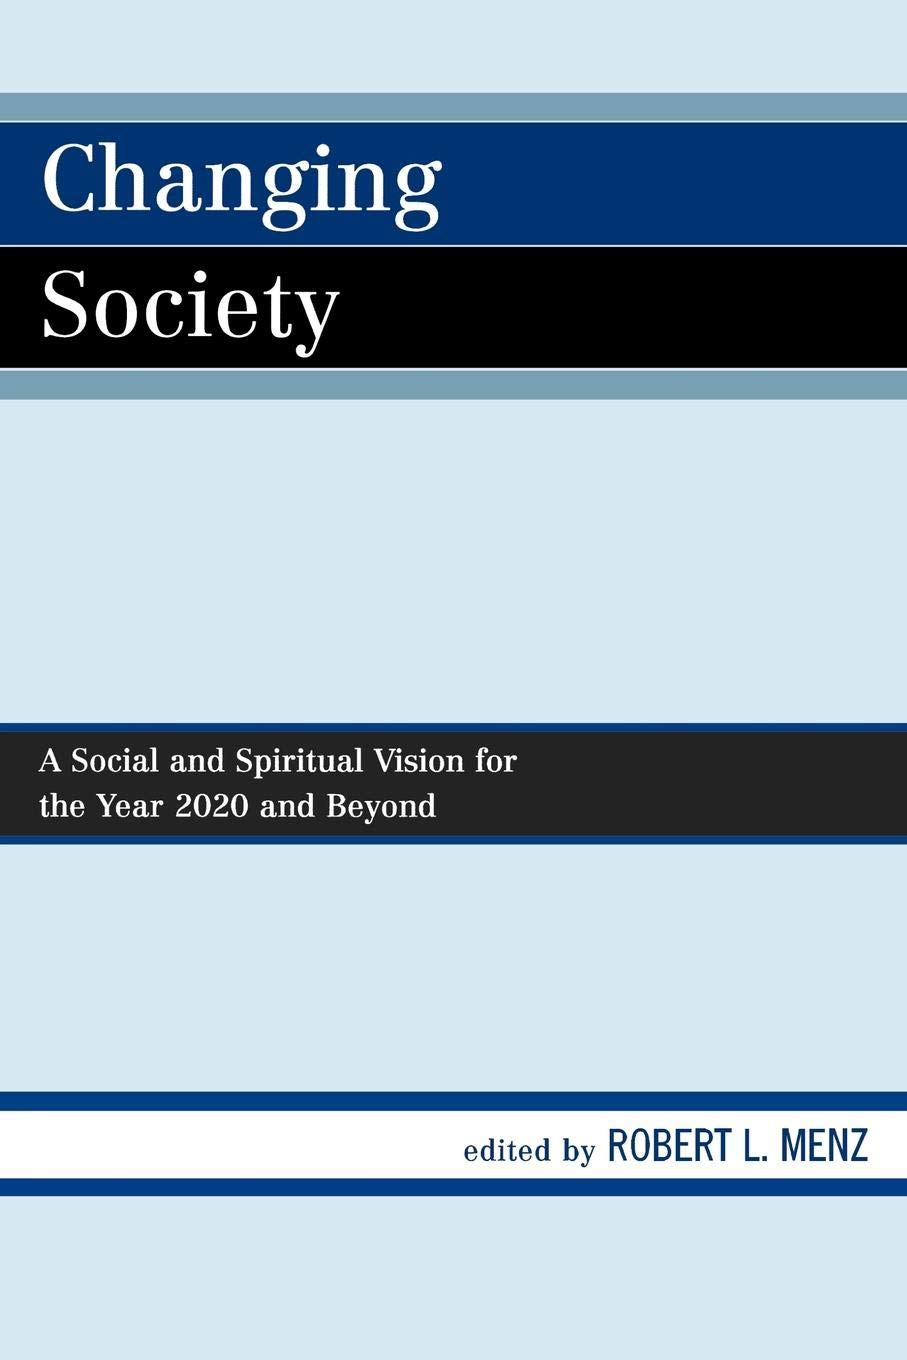 Download Changing Society: A Social and Spiritual Vision for the Year 2020 and Beyond PDF